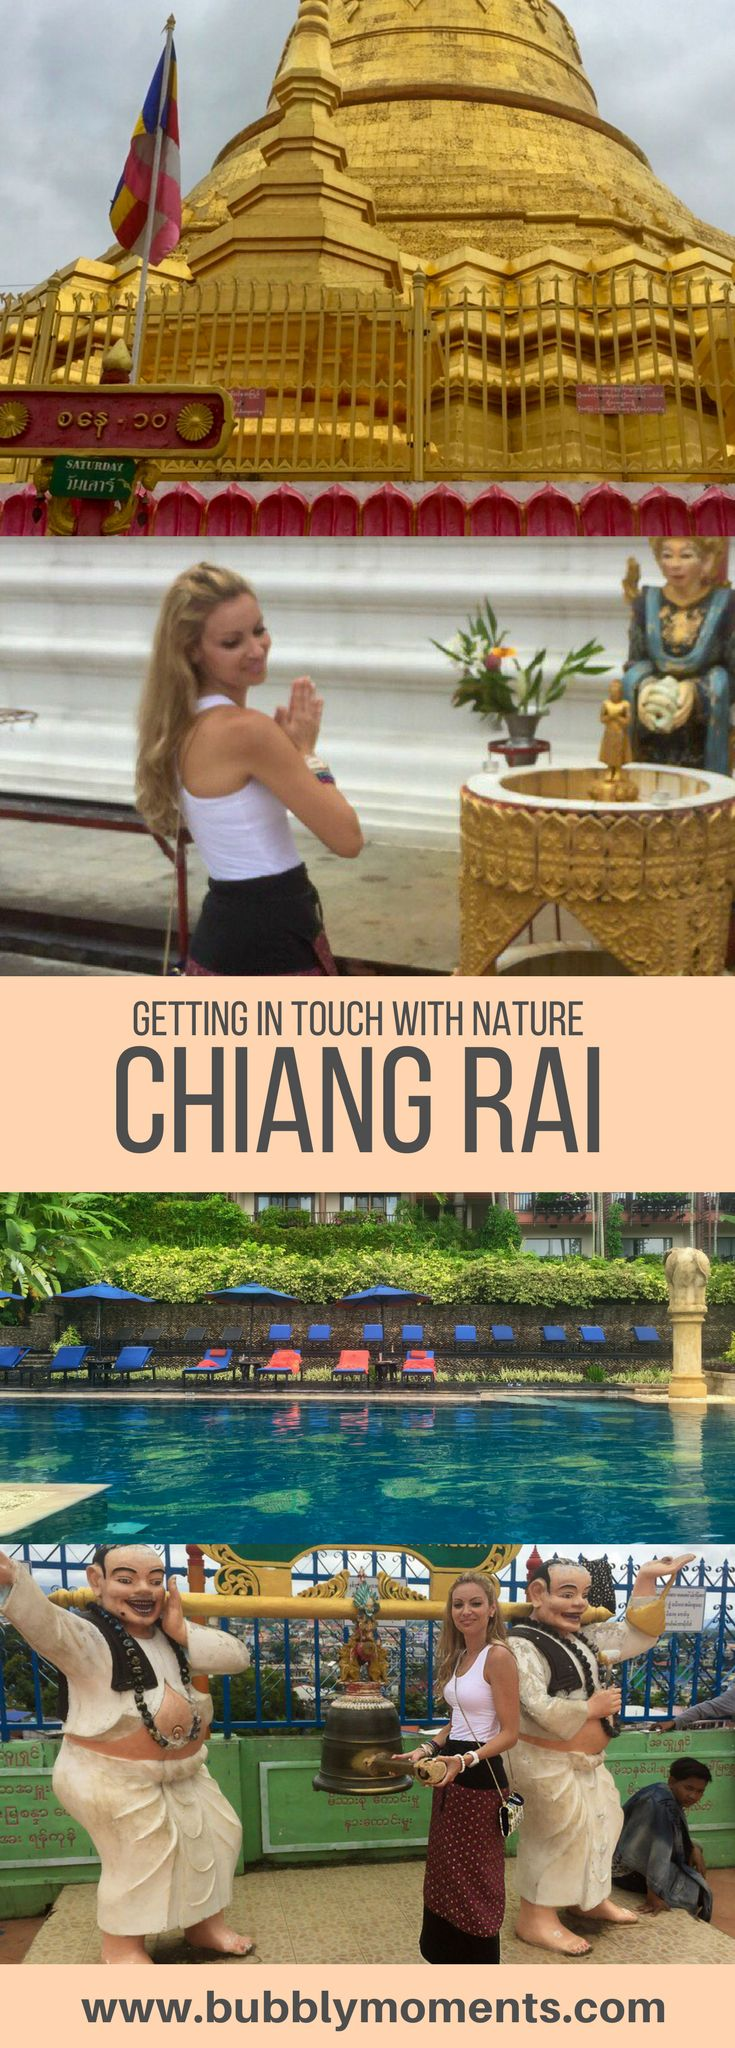 Chiang Rai Honeymoon – Walking With Elephants – Anantara Golden Triangle Elephant Camp & Resort | Fragrant gardens | Jungle Hills of Northern Thailand | Magical views of the Mekong River, Myanmar, and Laos | Travel | Travel Photography | Luxury Hotels | Bubbly Moments